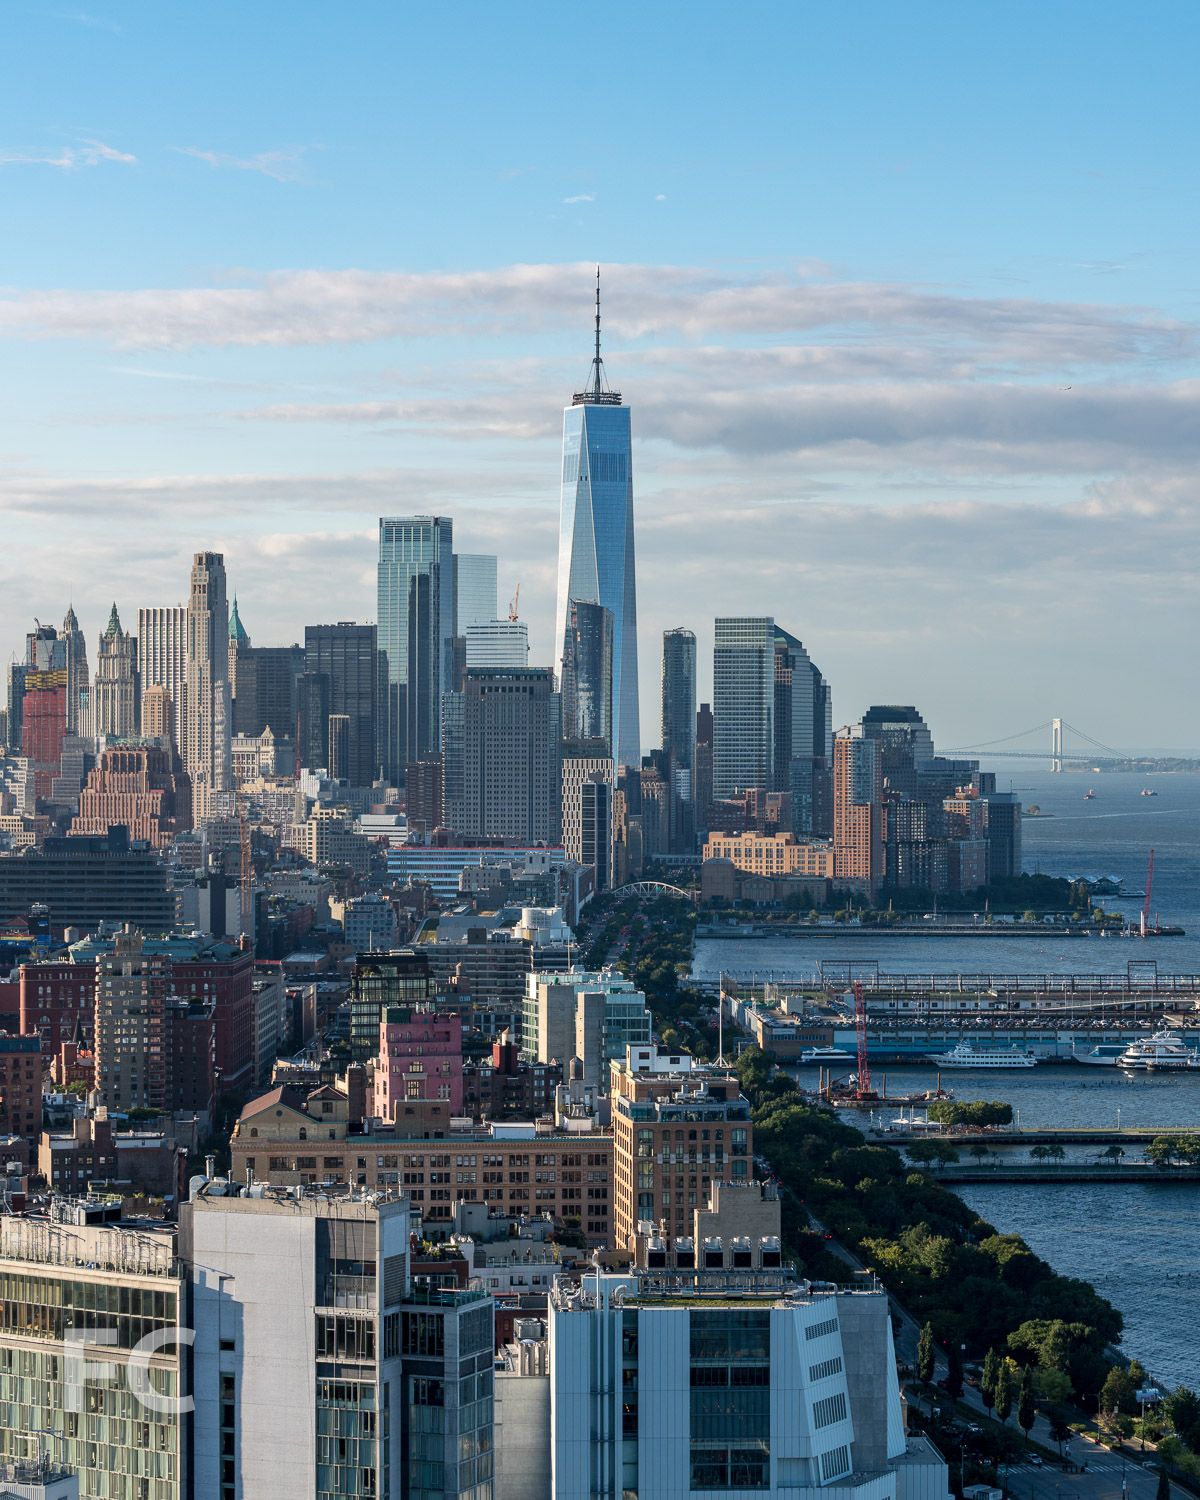 Rooftop view of One World Trade Center rising above Lower Manhattan.